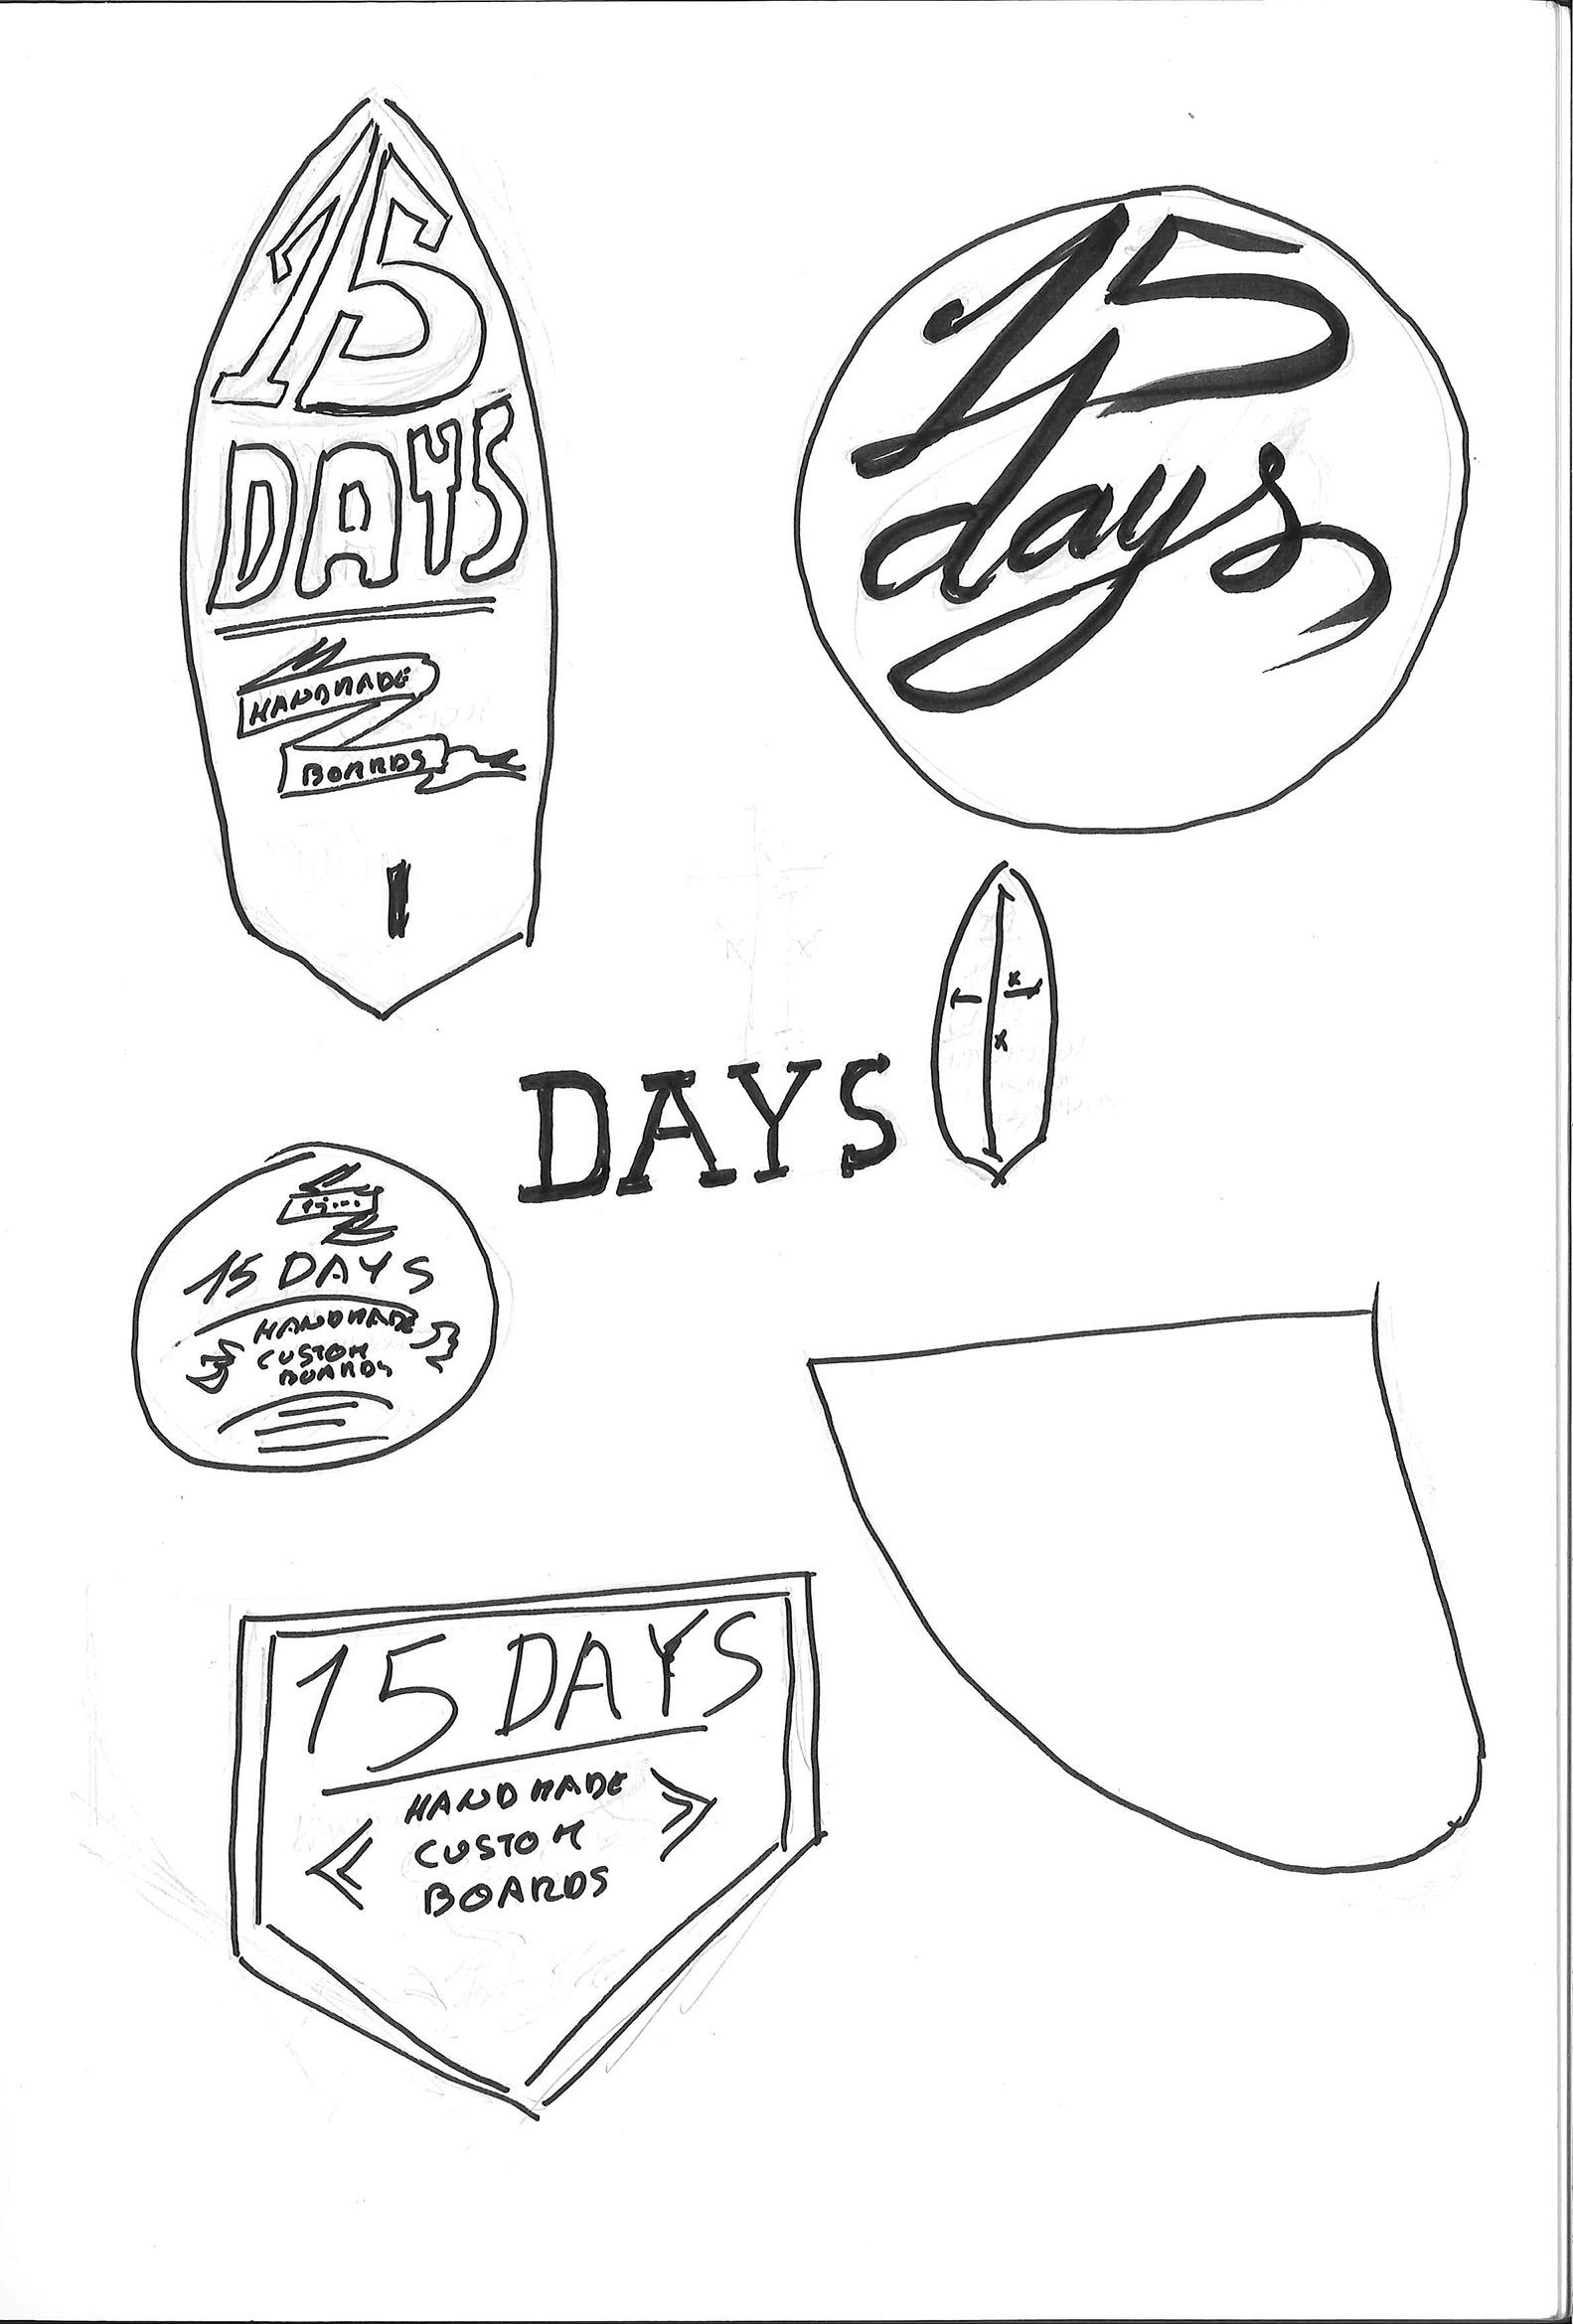 15 days boards - image 3 - student project